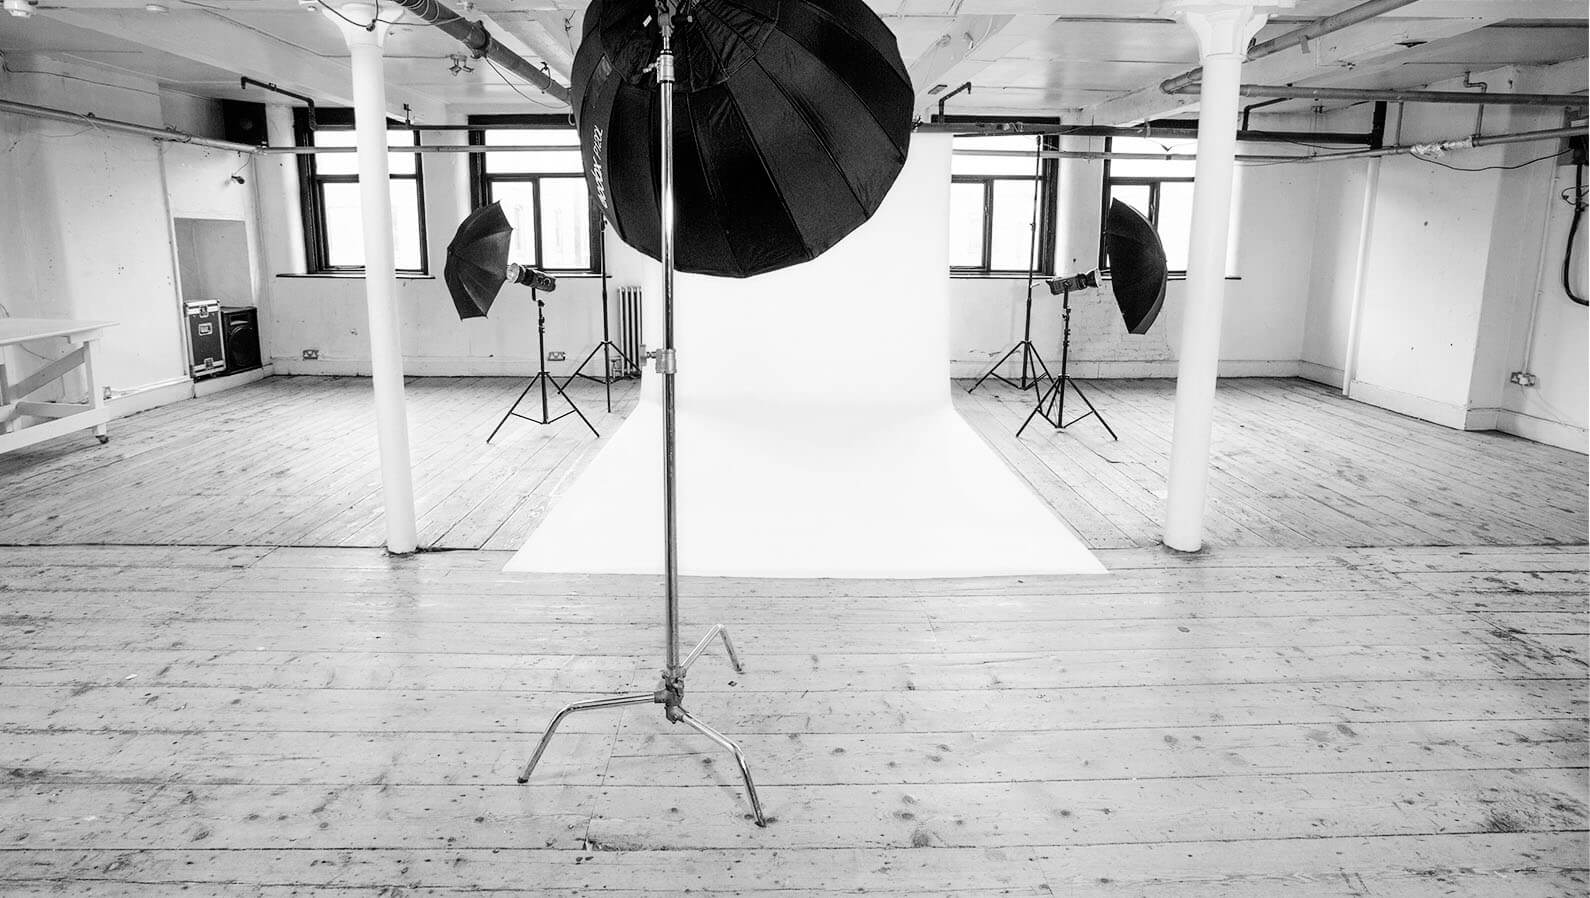 northern quarter photography studio Manchester for hire with kit